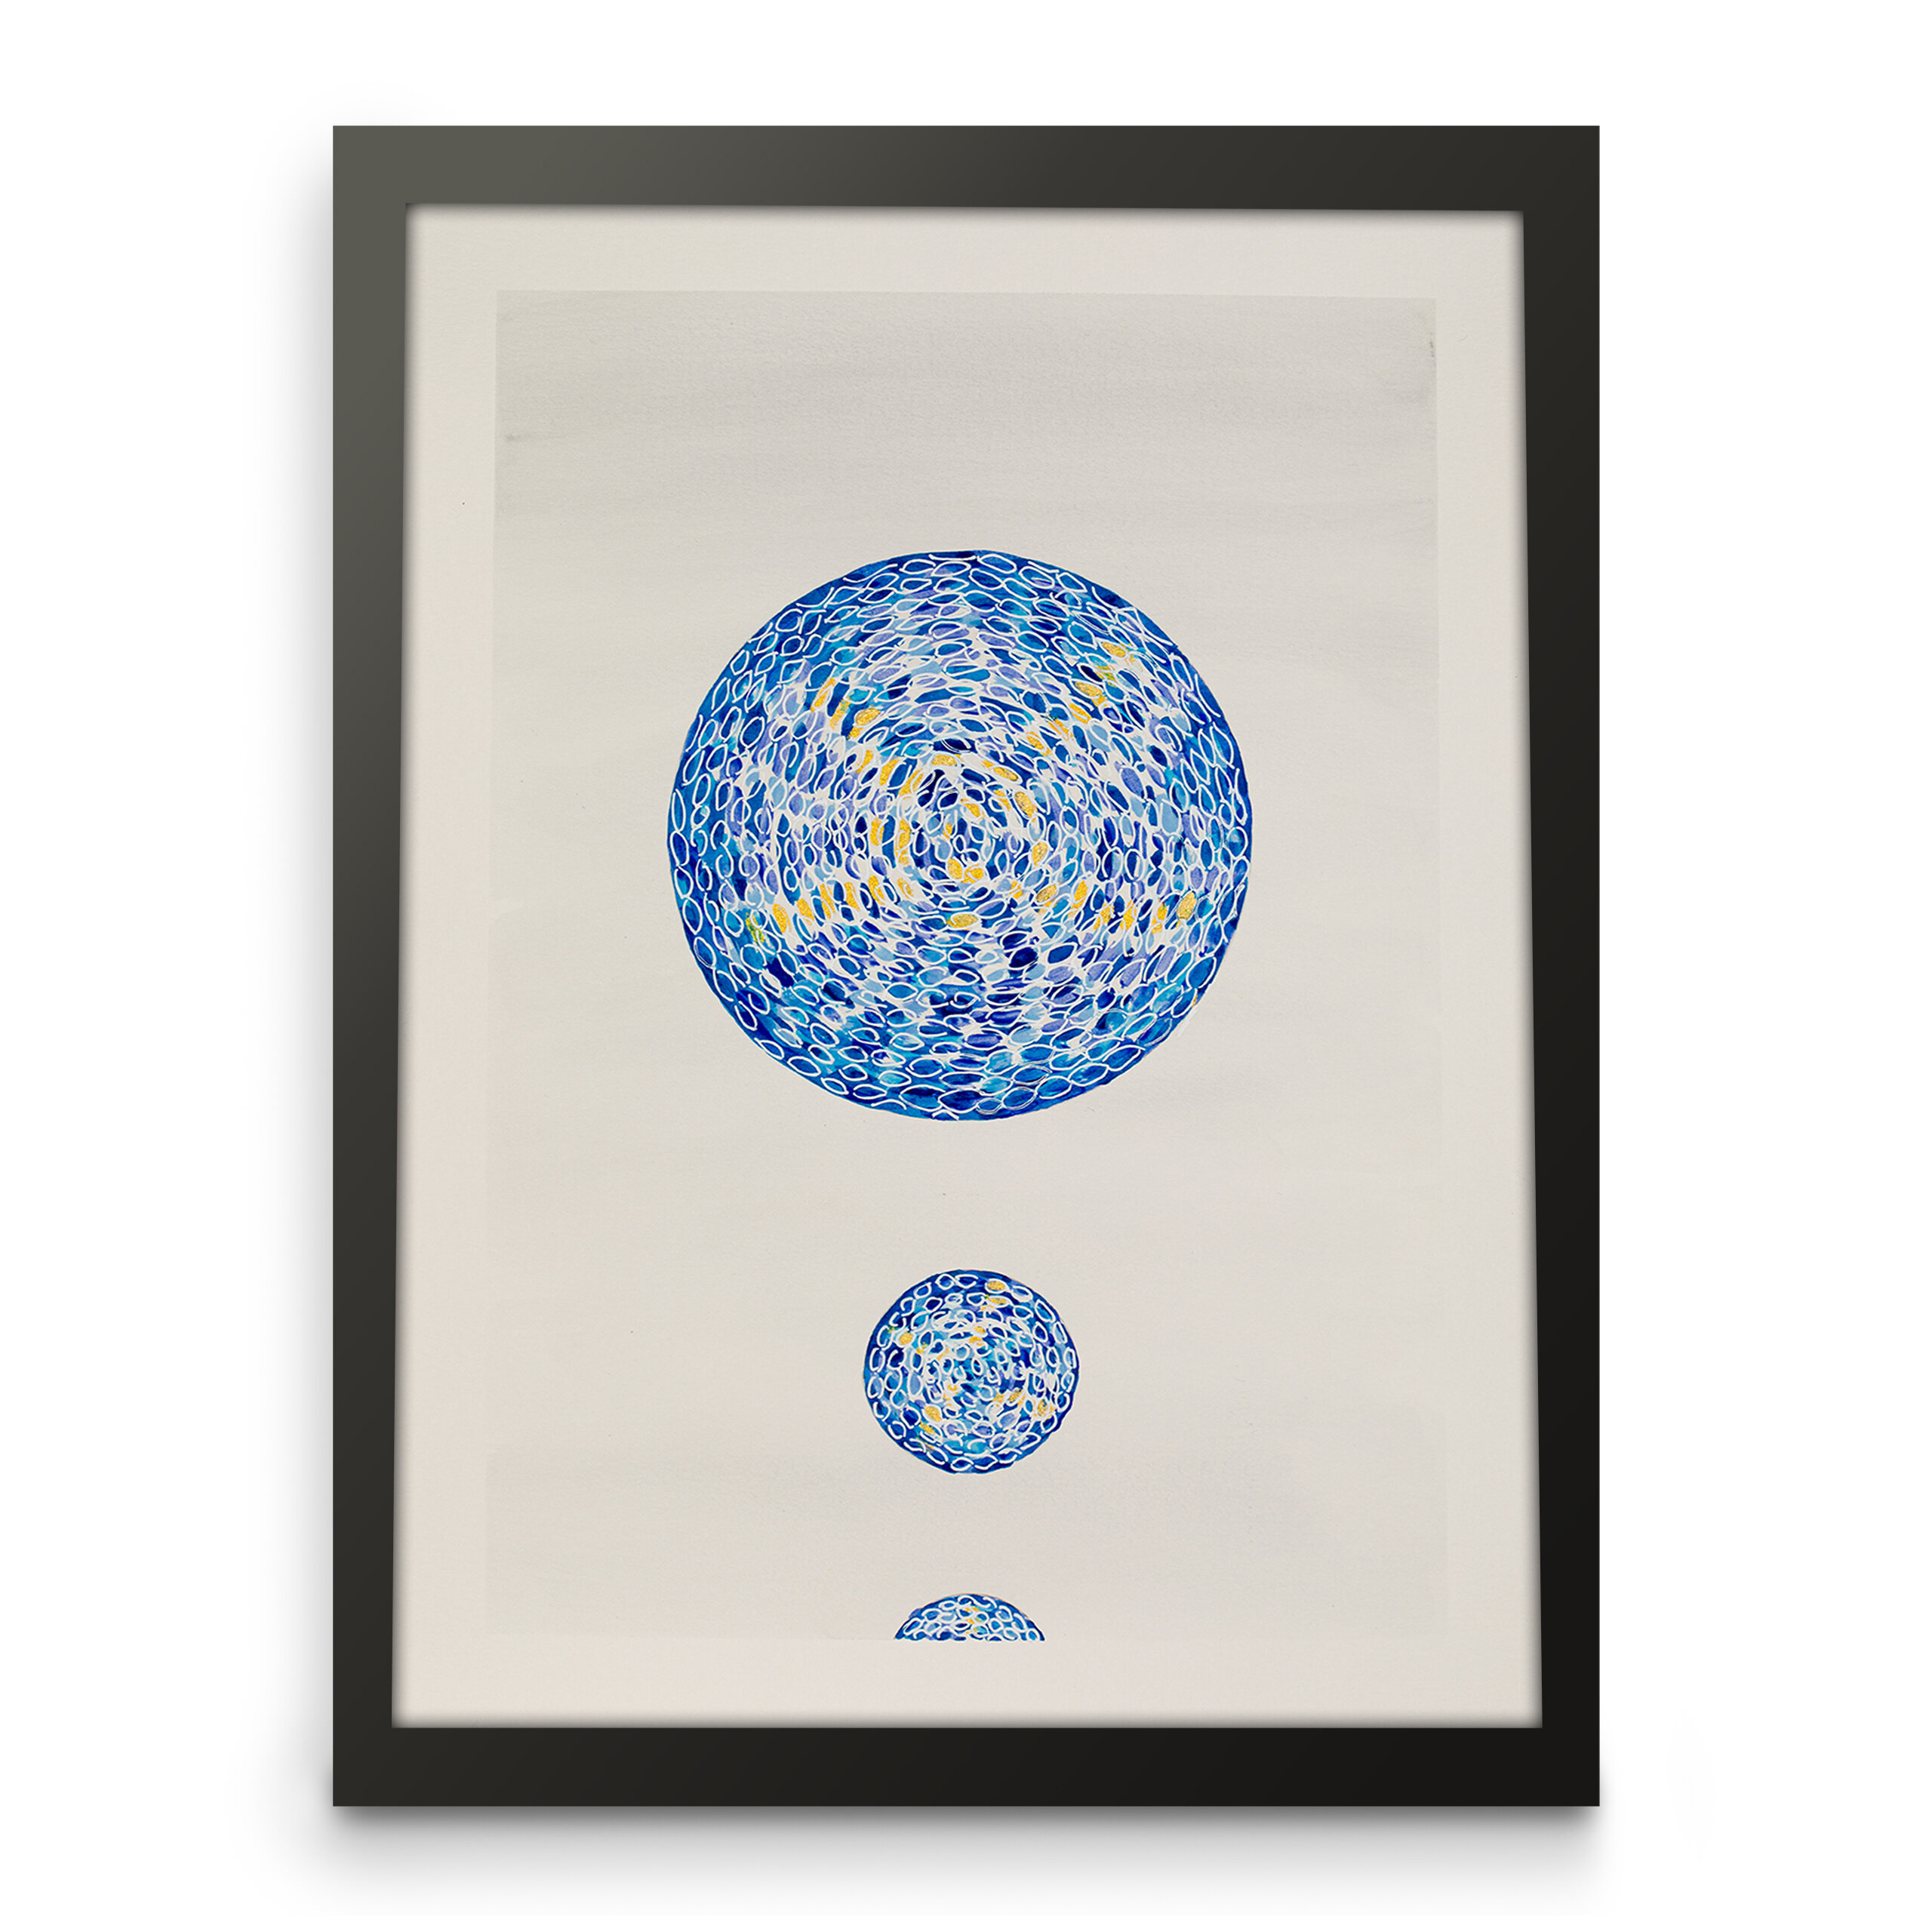 Blue abstract art paper print for wall decor, Front view